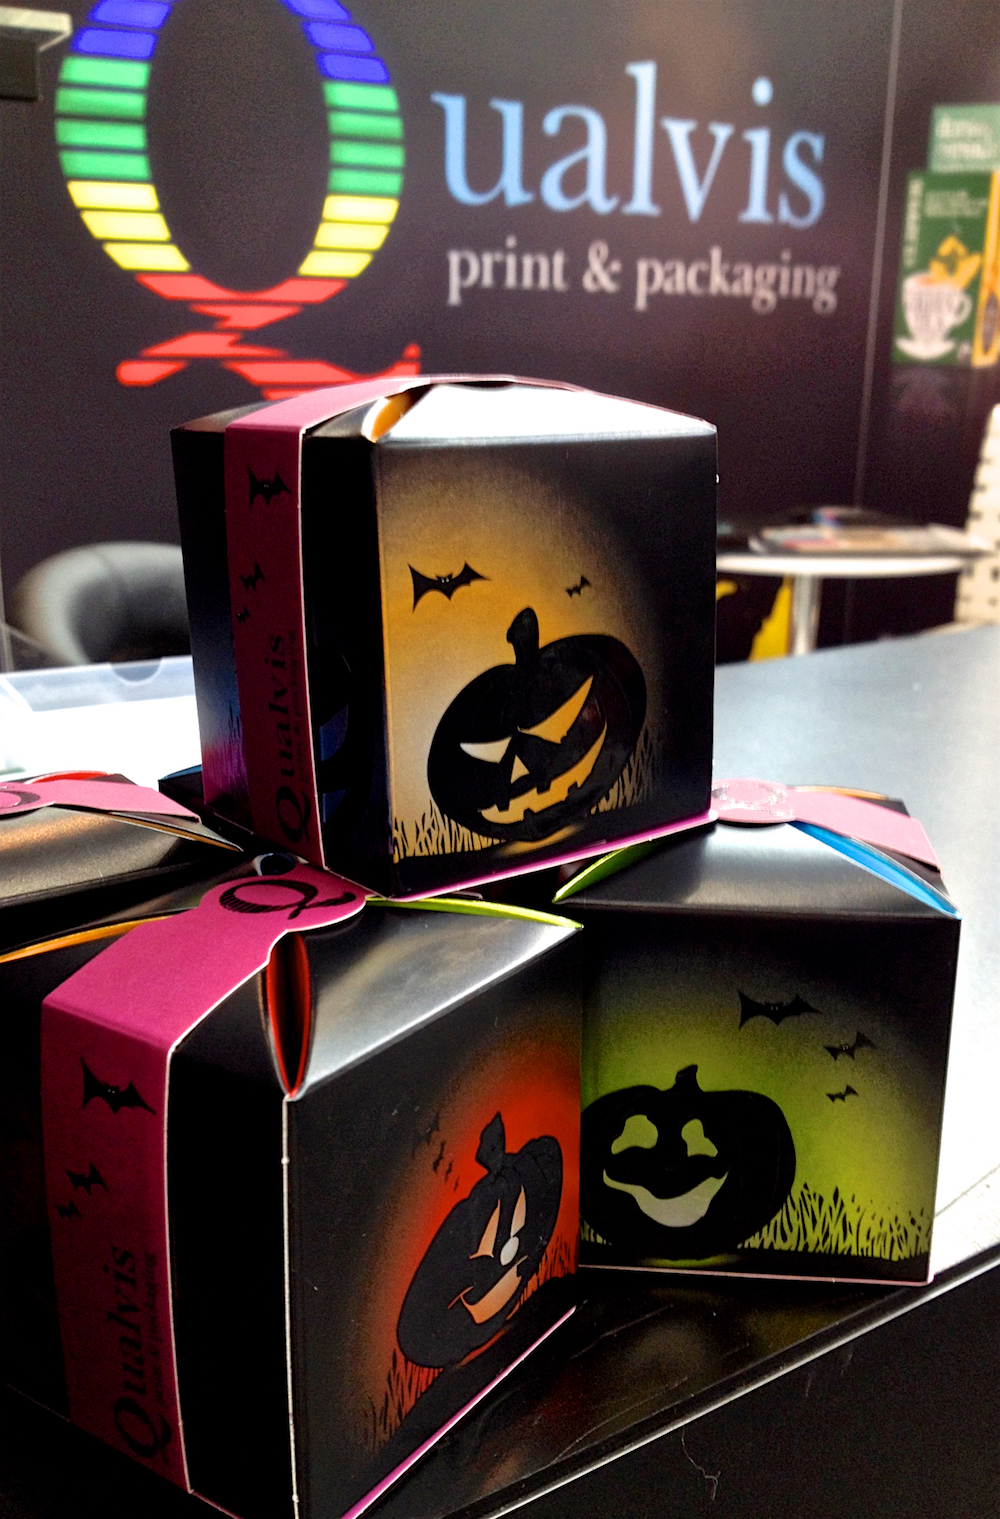 Qualvis showcases its range of finishes with Halloween pack